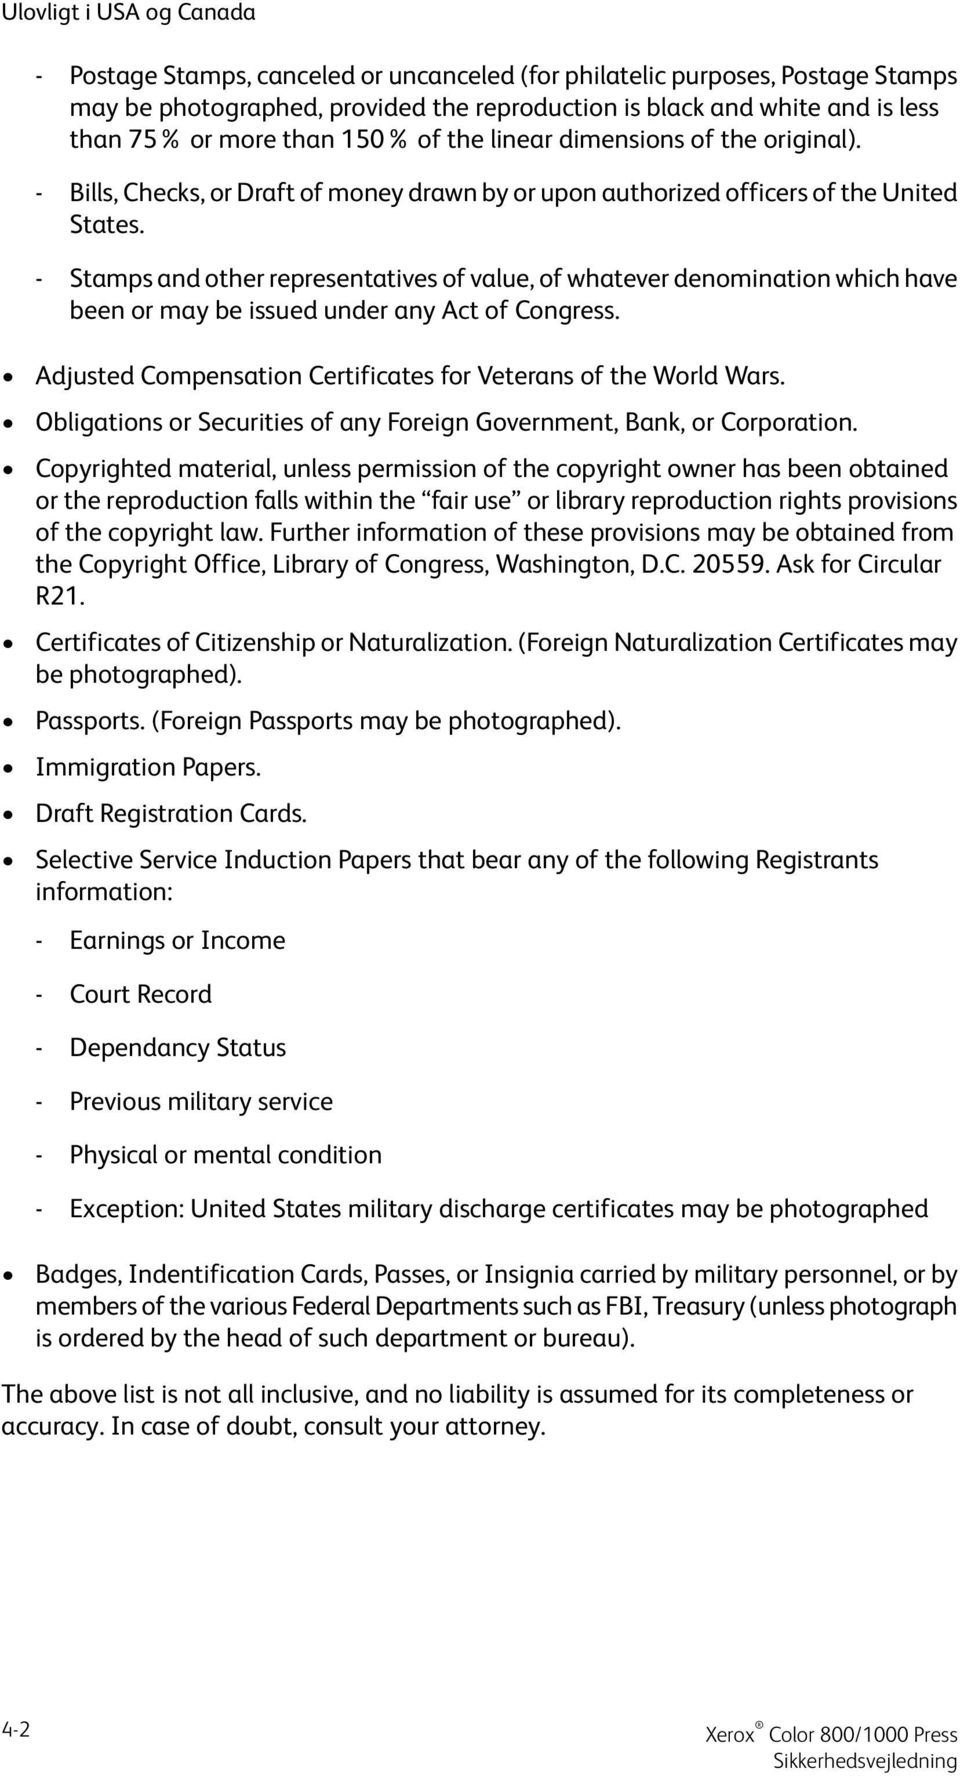 - Stamps and other representatives of value, of whatever denomination which have been or may be issued under any Act of Congress. Adjusted Compensation Certificates for Veterans of the World Wars.